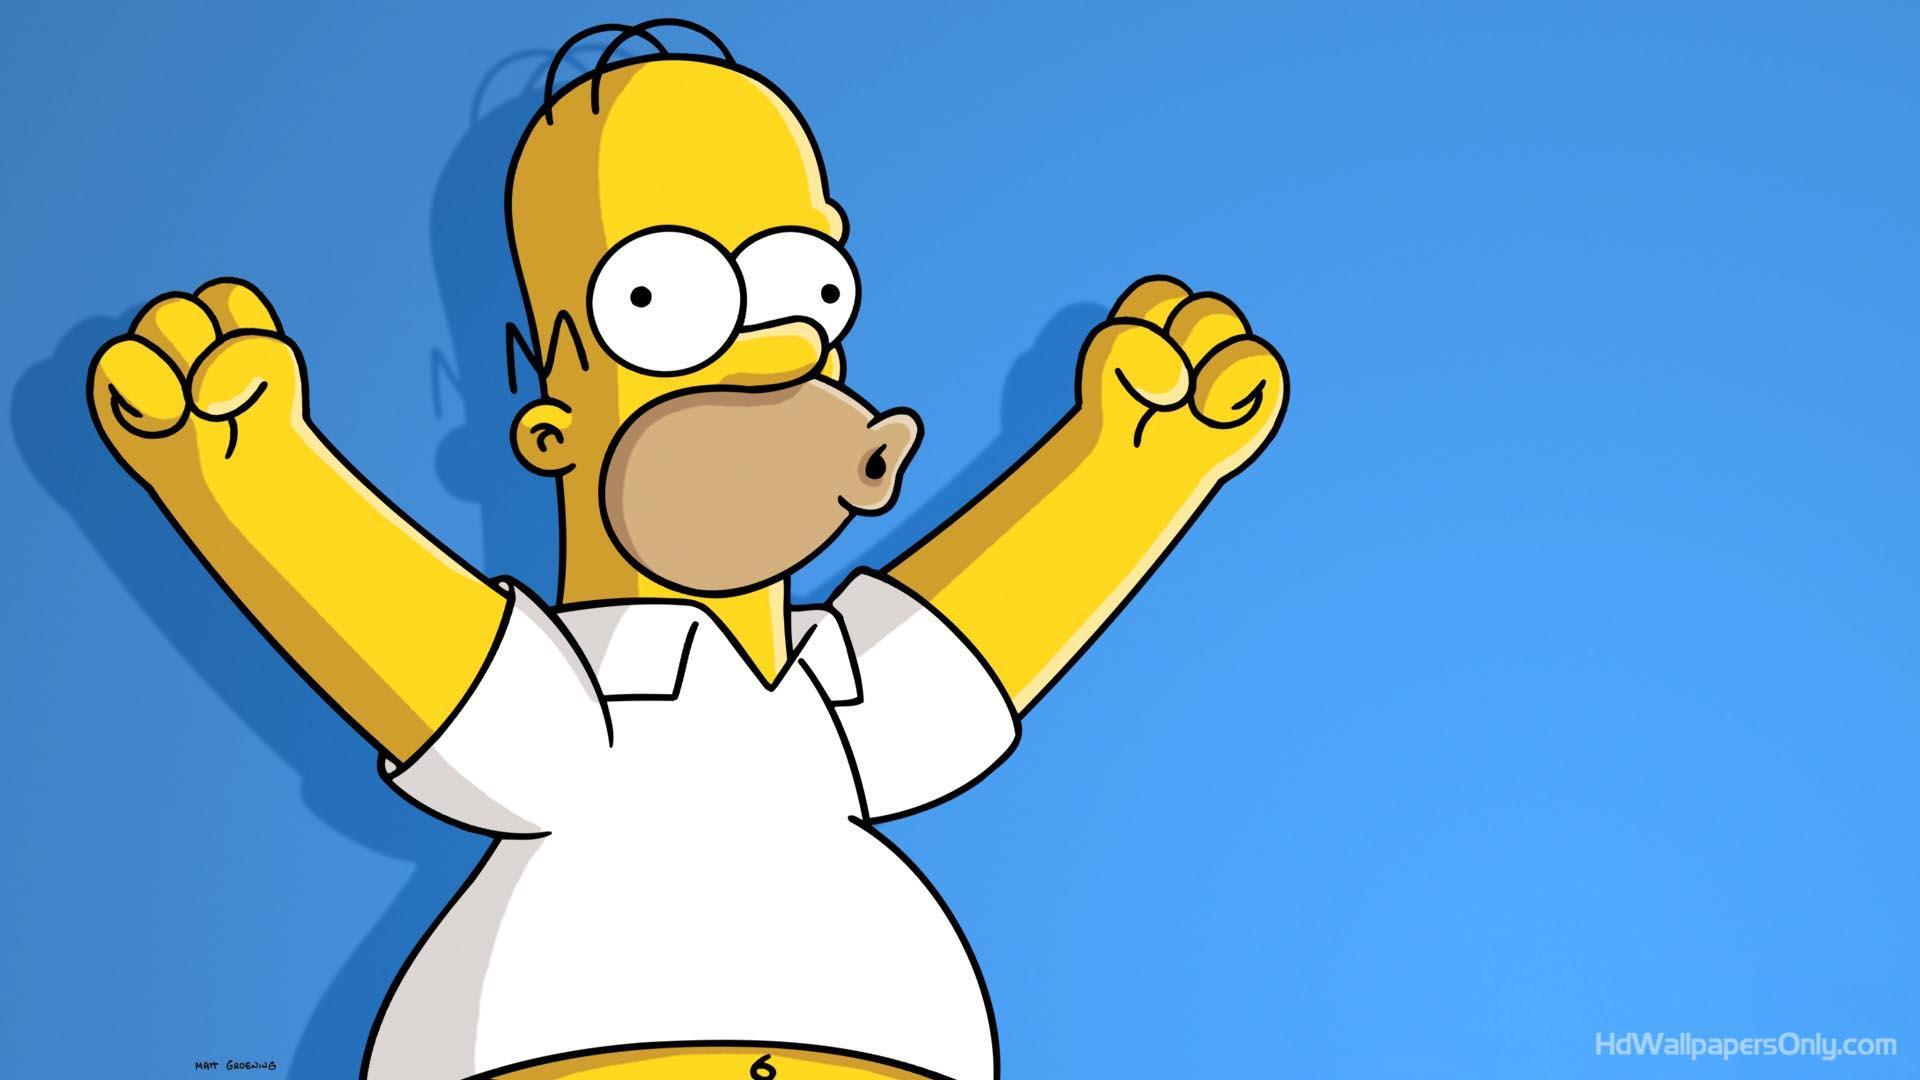 The Simpsons Wallpapers HD Wallpaper